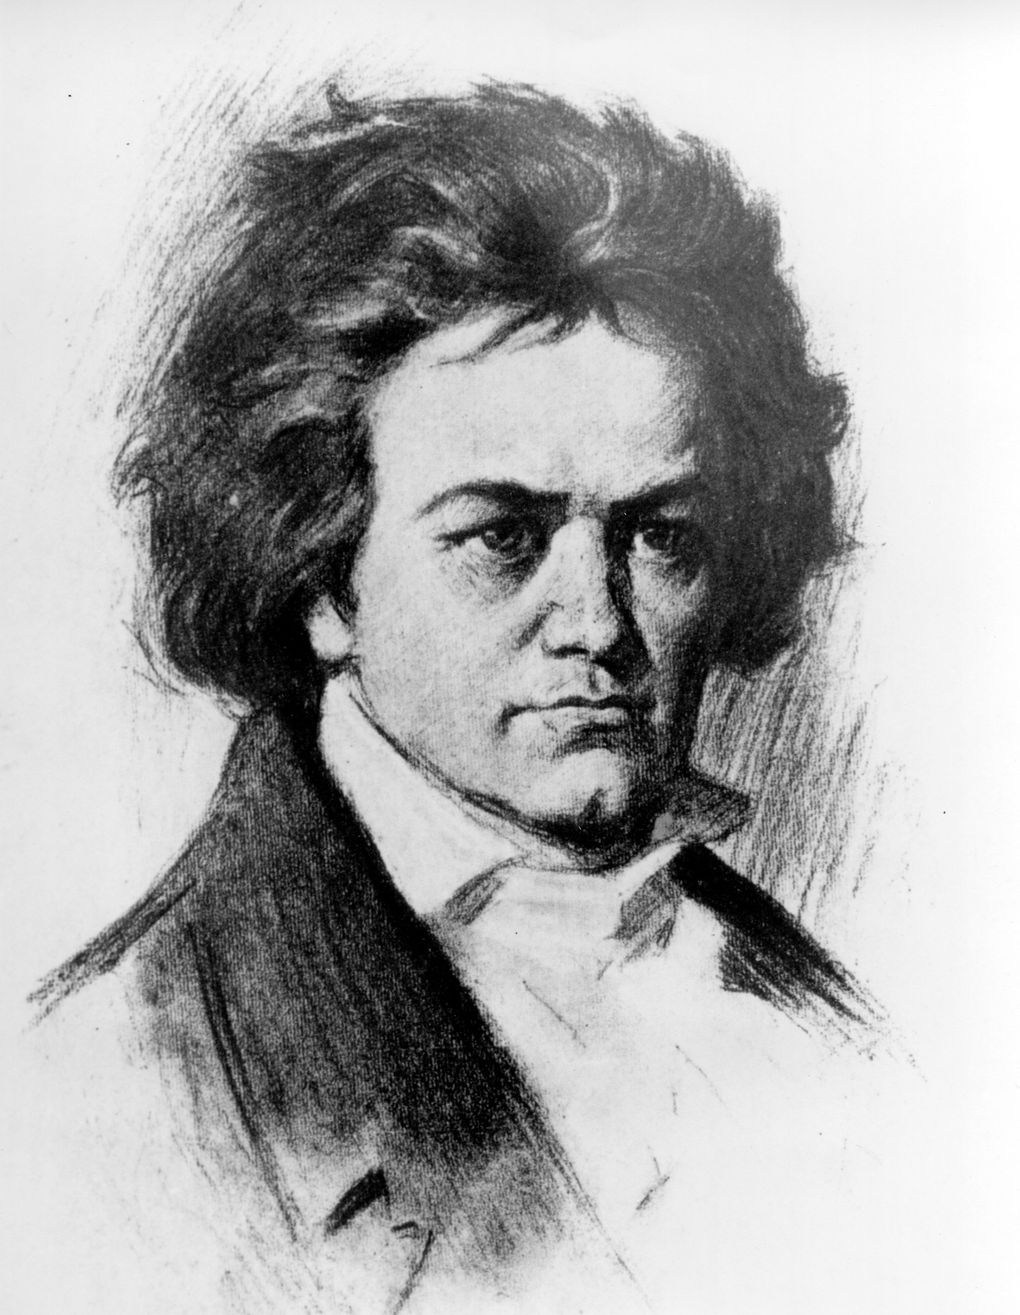 An undated sketch of German composer Ludwig van Beethoven, who was born in December 1770. (The Associated Press)